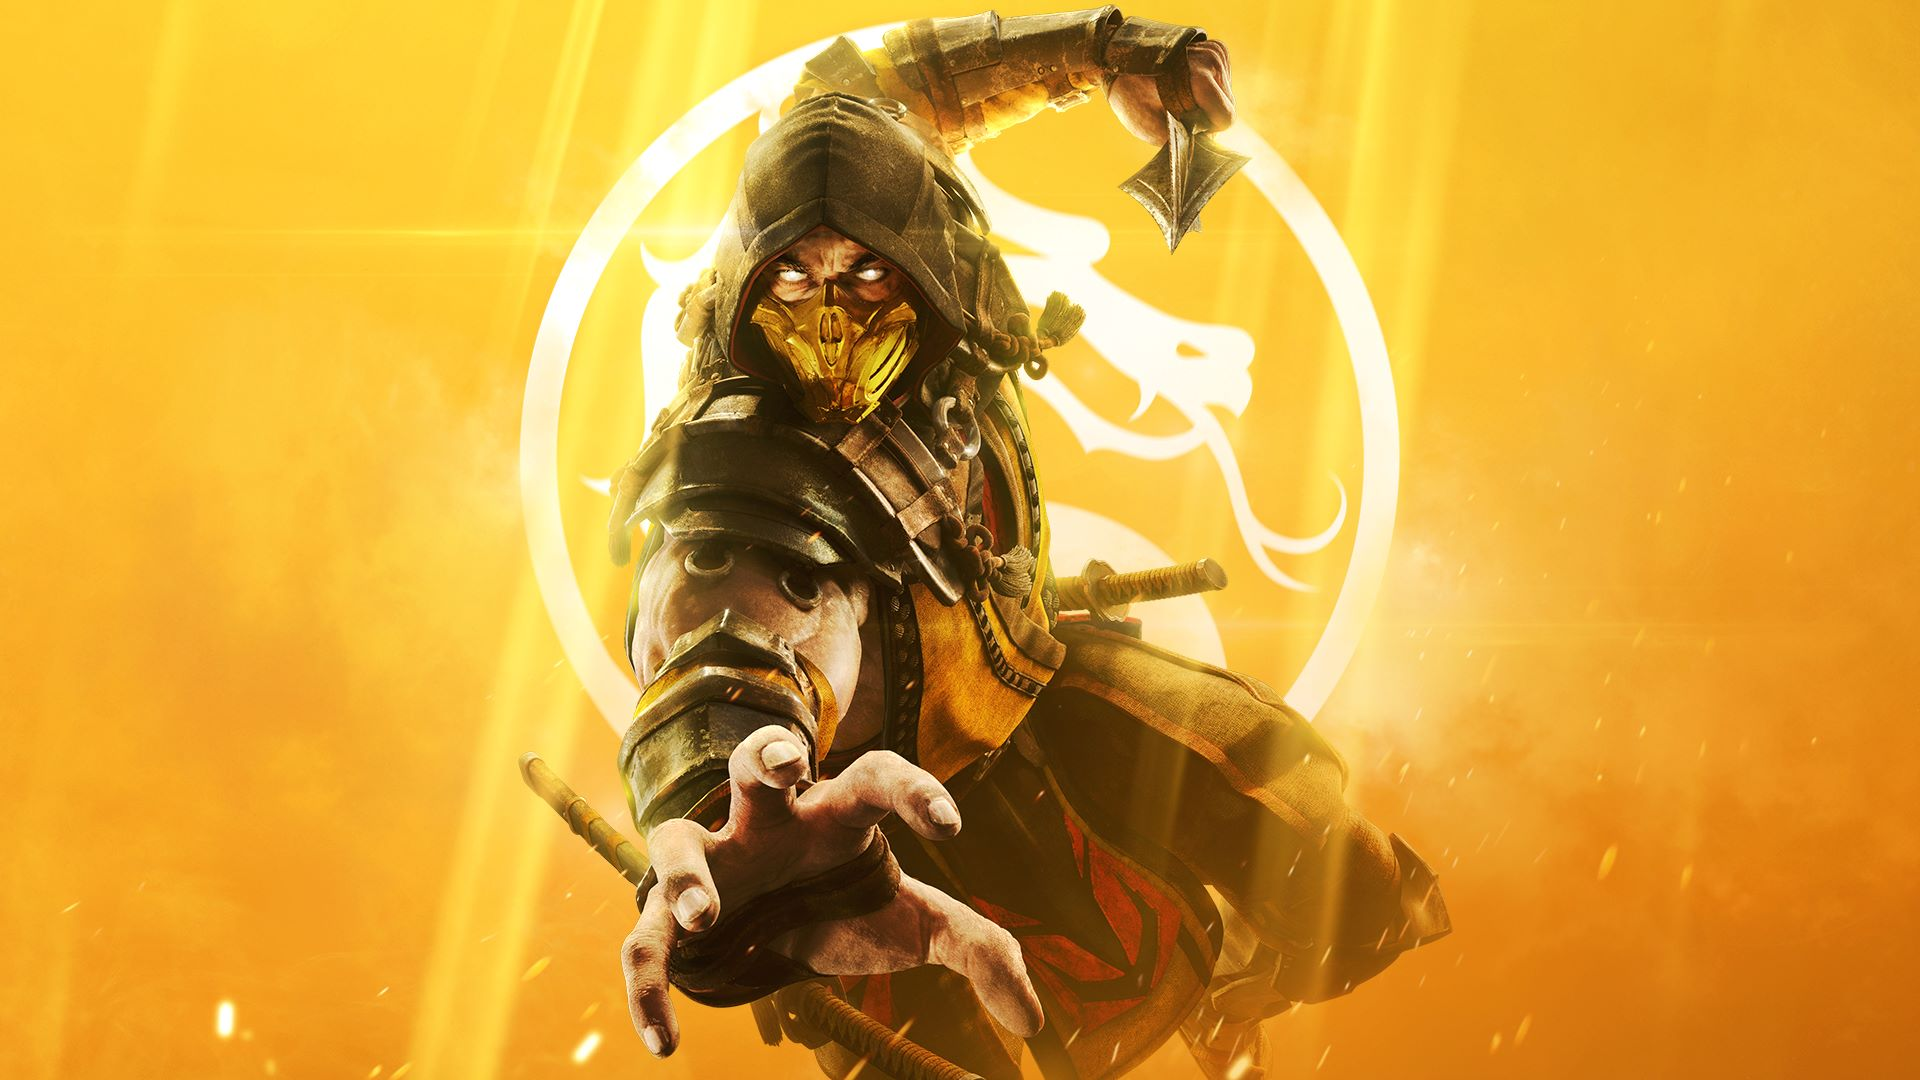 Mortal Kombat 11 Button Inputs For All Fatalities And Brutalities